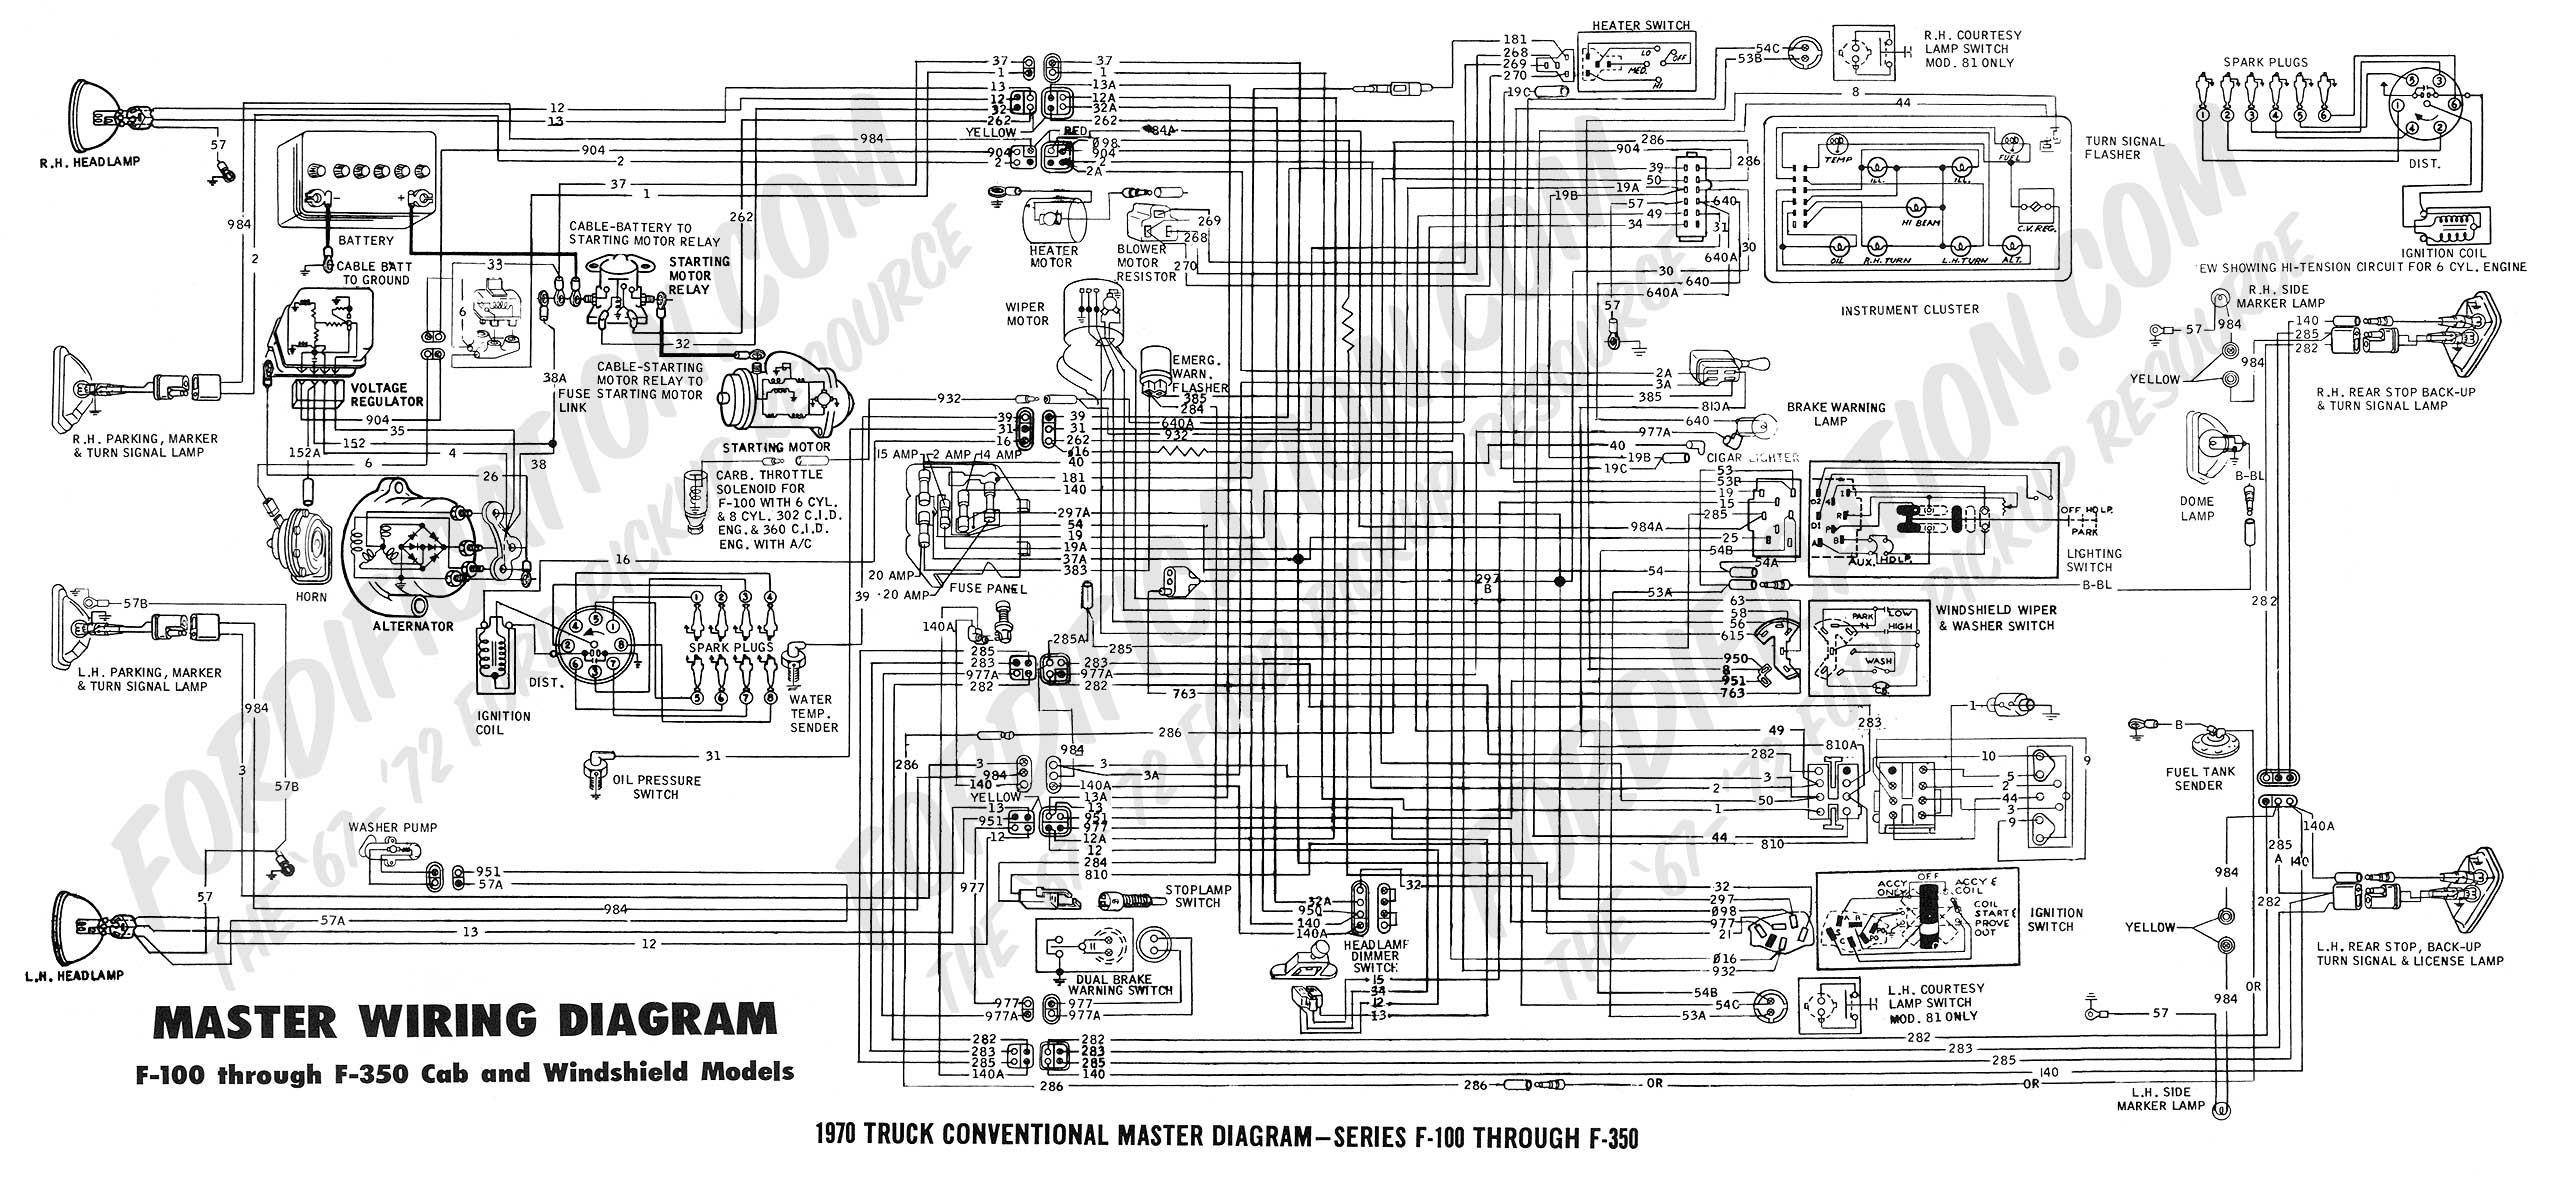 Schematics h on 1967 vw beetle engine diagram